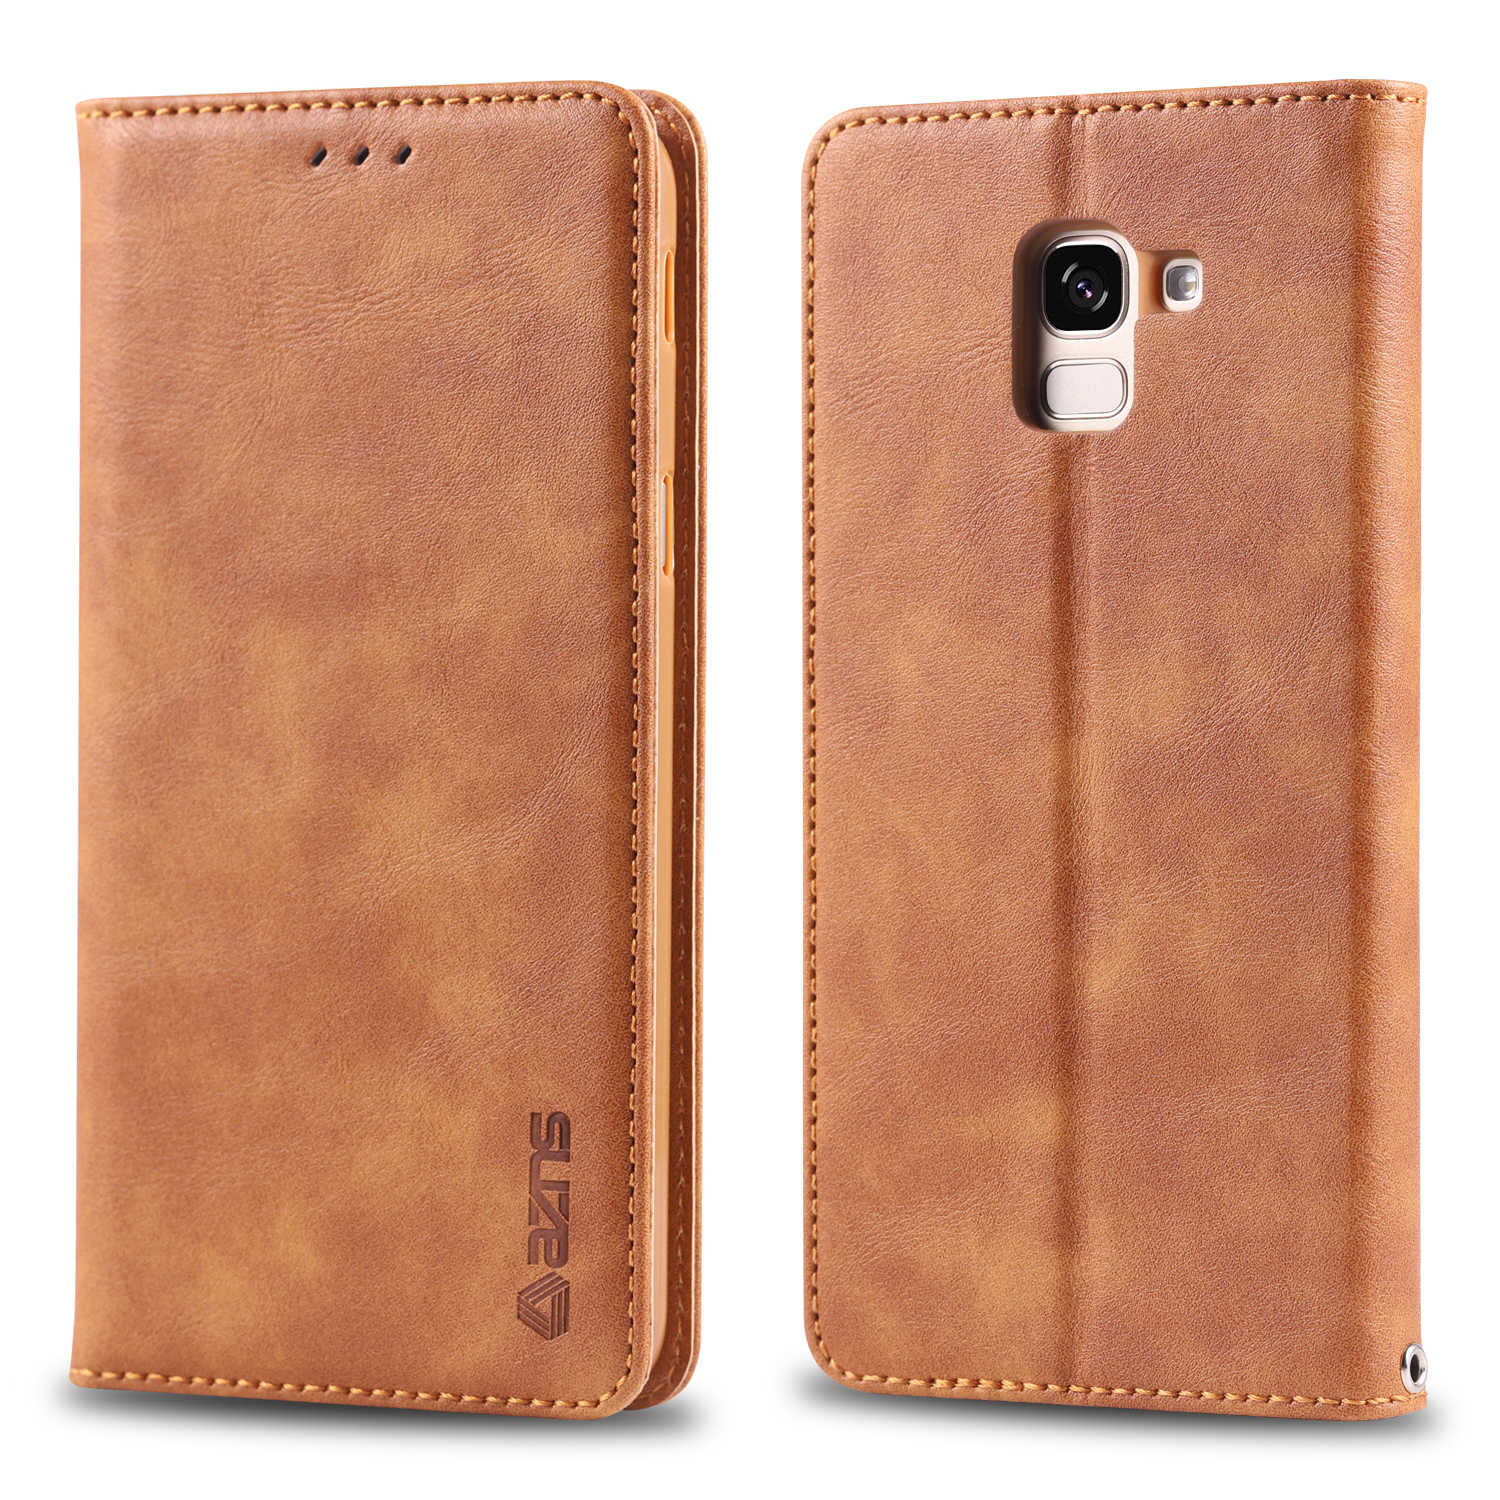 Case For Samsung Galaxy J4 J6 Plus 2018 S7 S8 S9 S10 A6 A8 Plus A9 s A7 2018 S10E 5G Note 9 5 Leather Flip Wallet Magnetic Cover